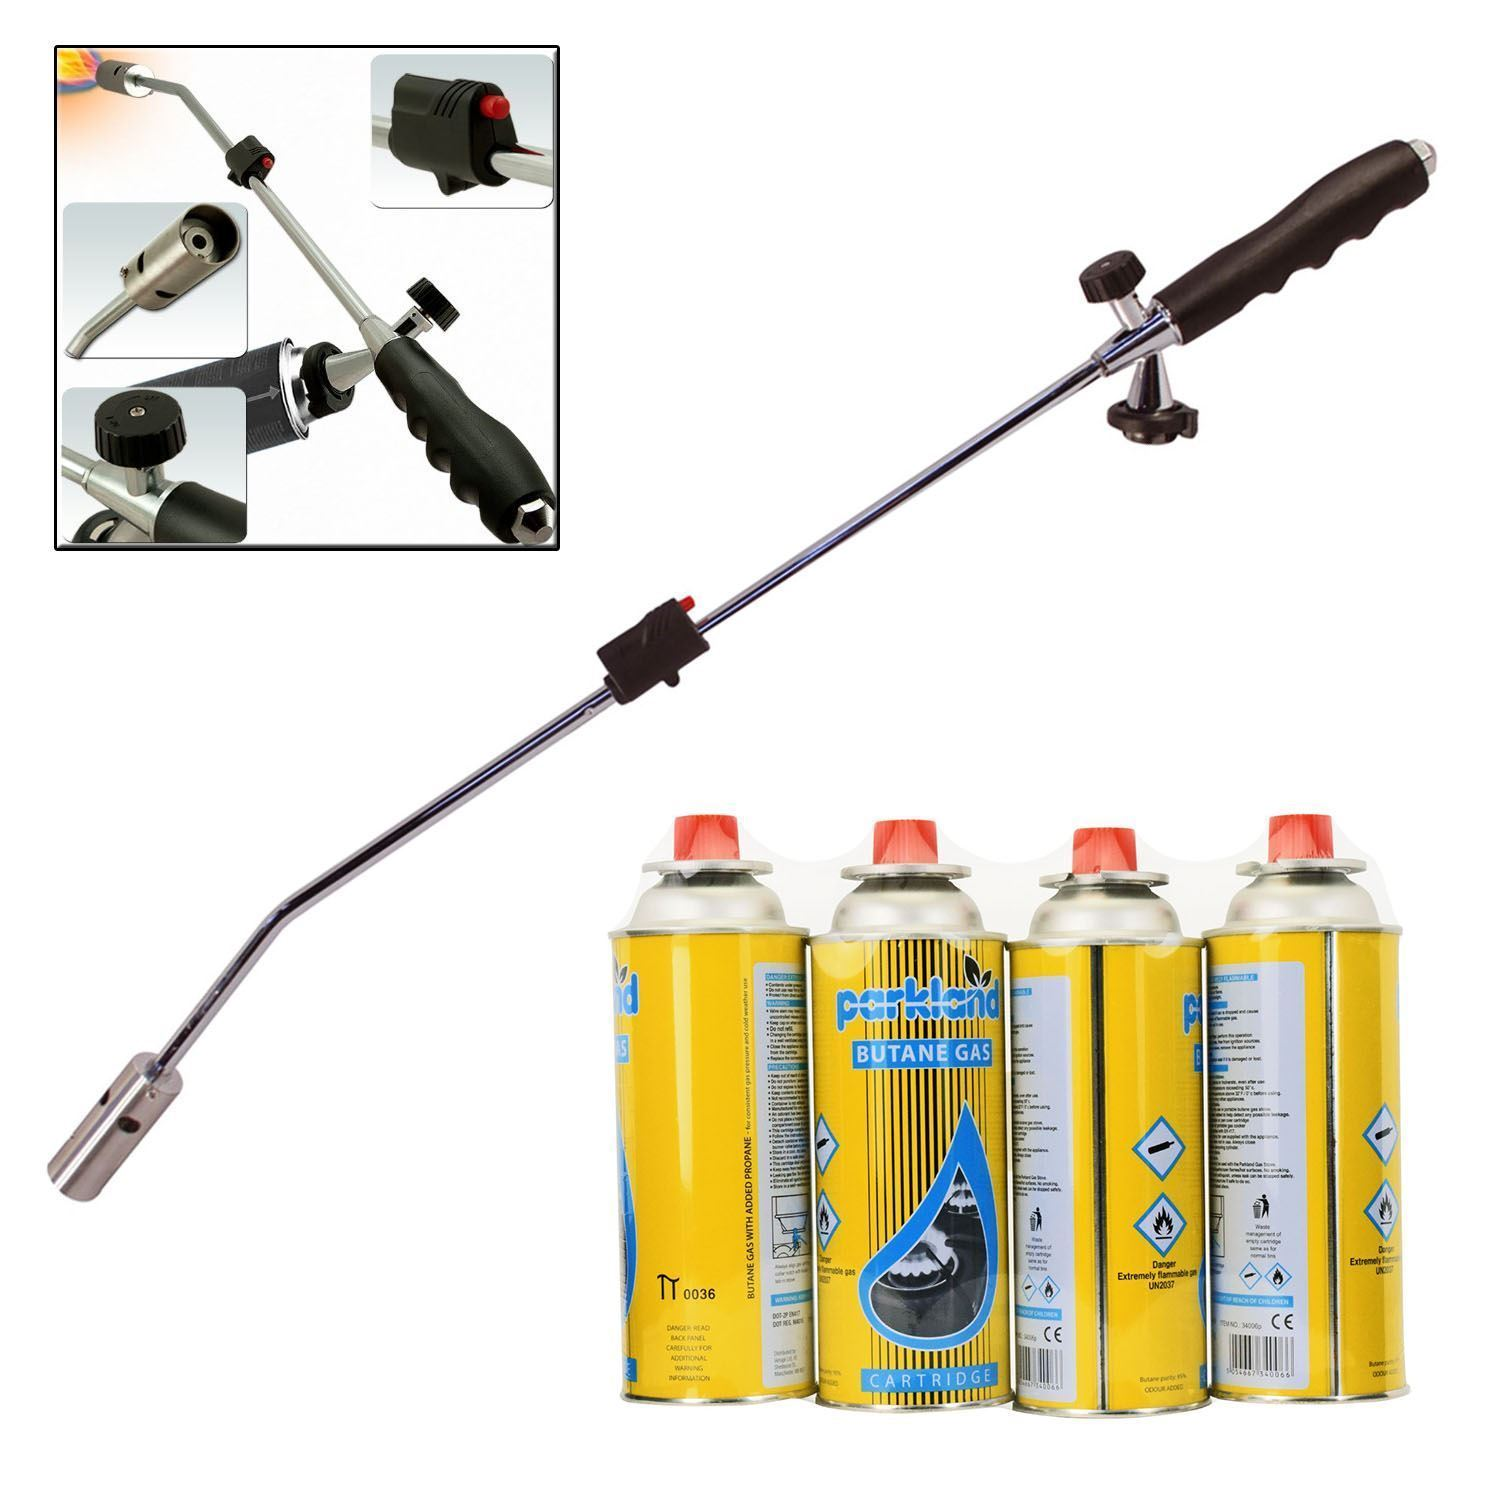 Weed wand butane gas canisters blowtorch garden torch for Petrol wand